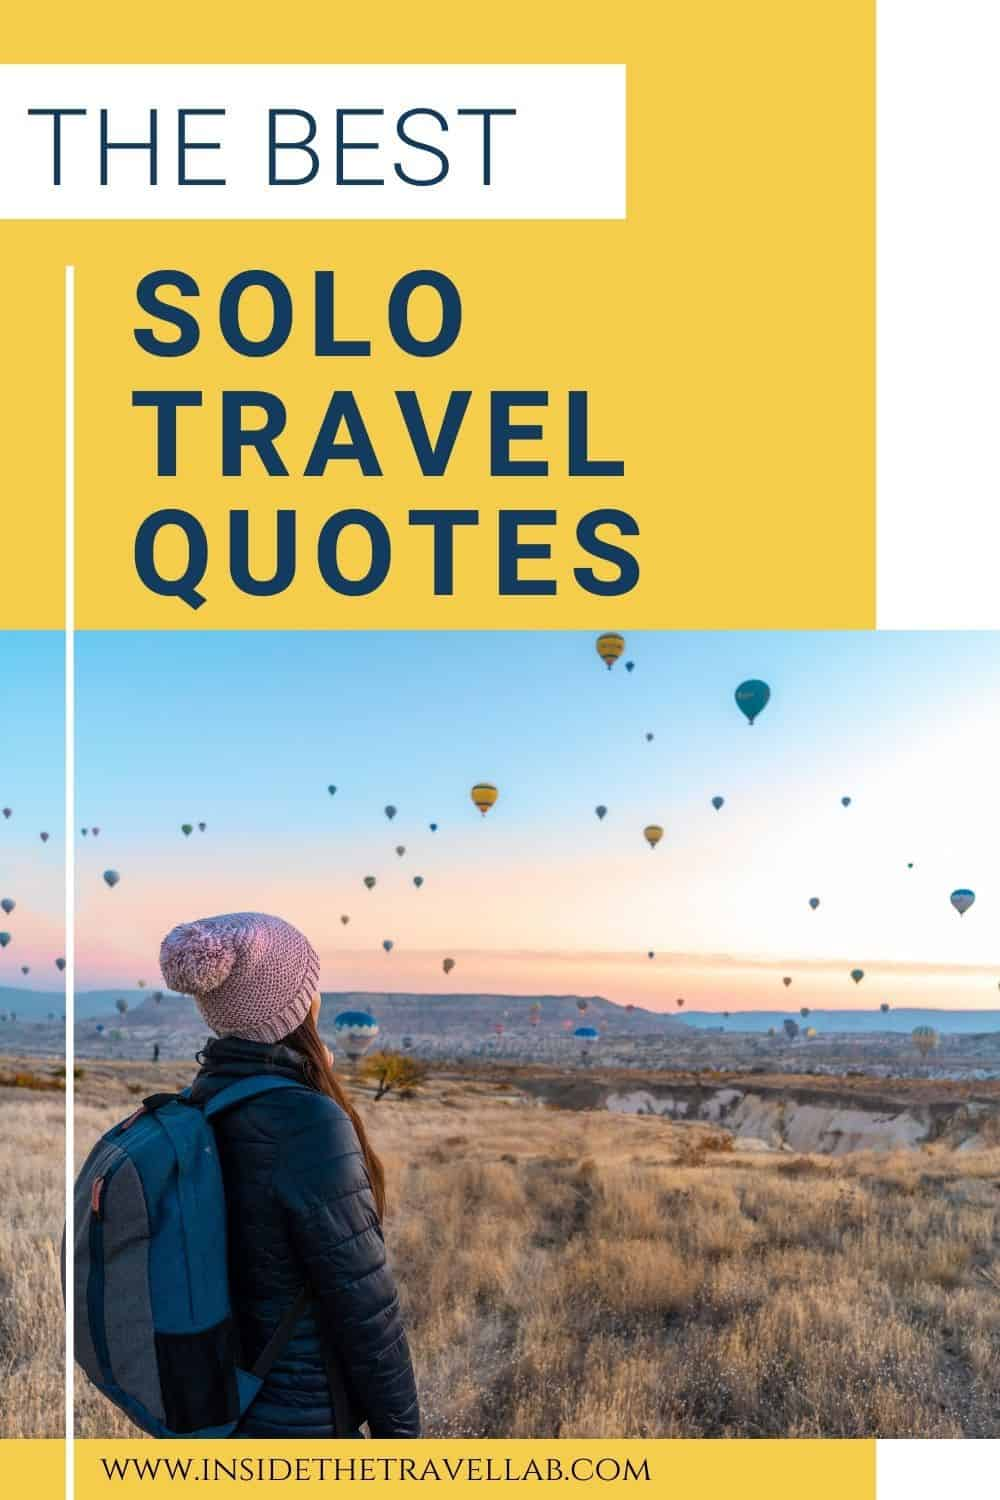 The best solo travel quotes for instagram captions